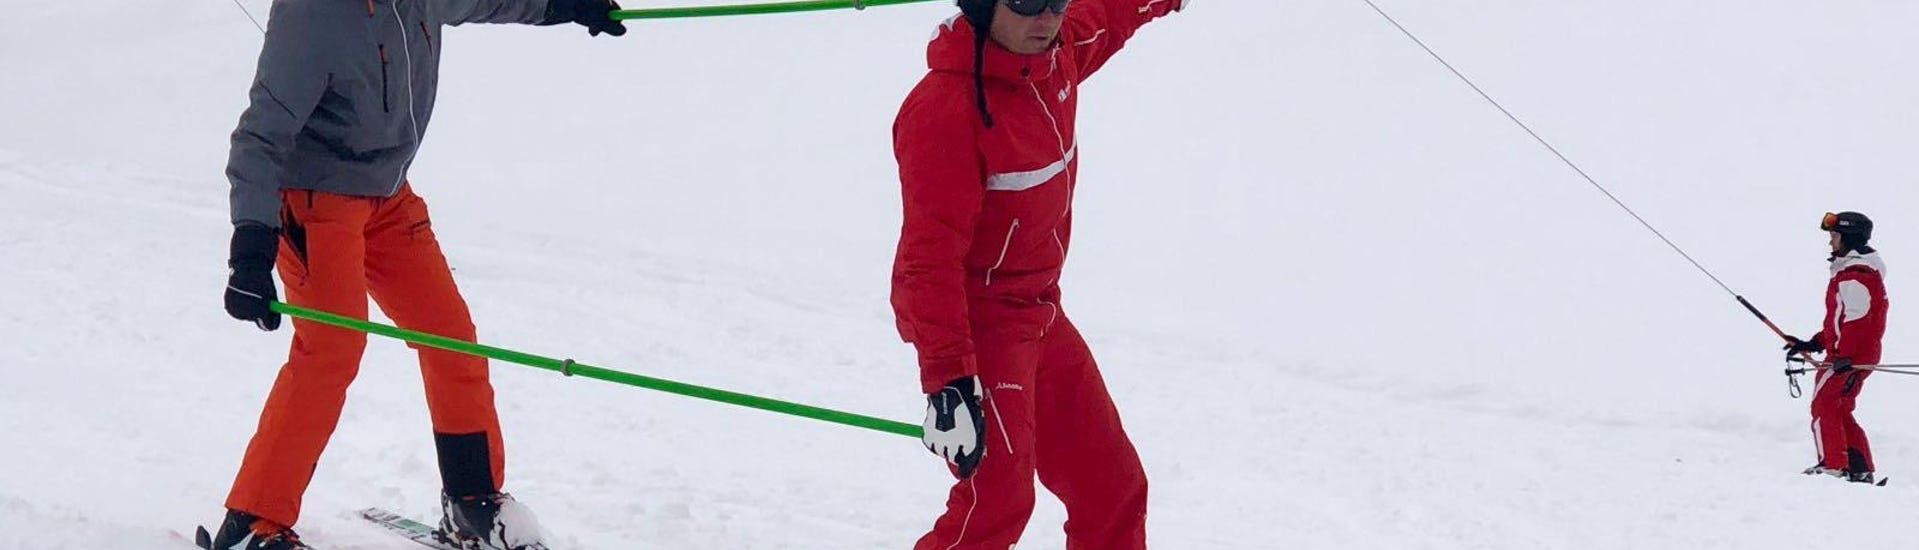 Ski Lessons for Adults - First Timer